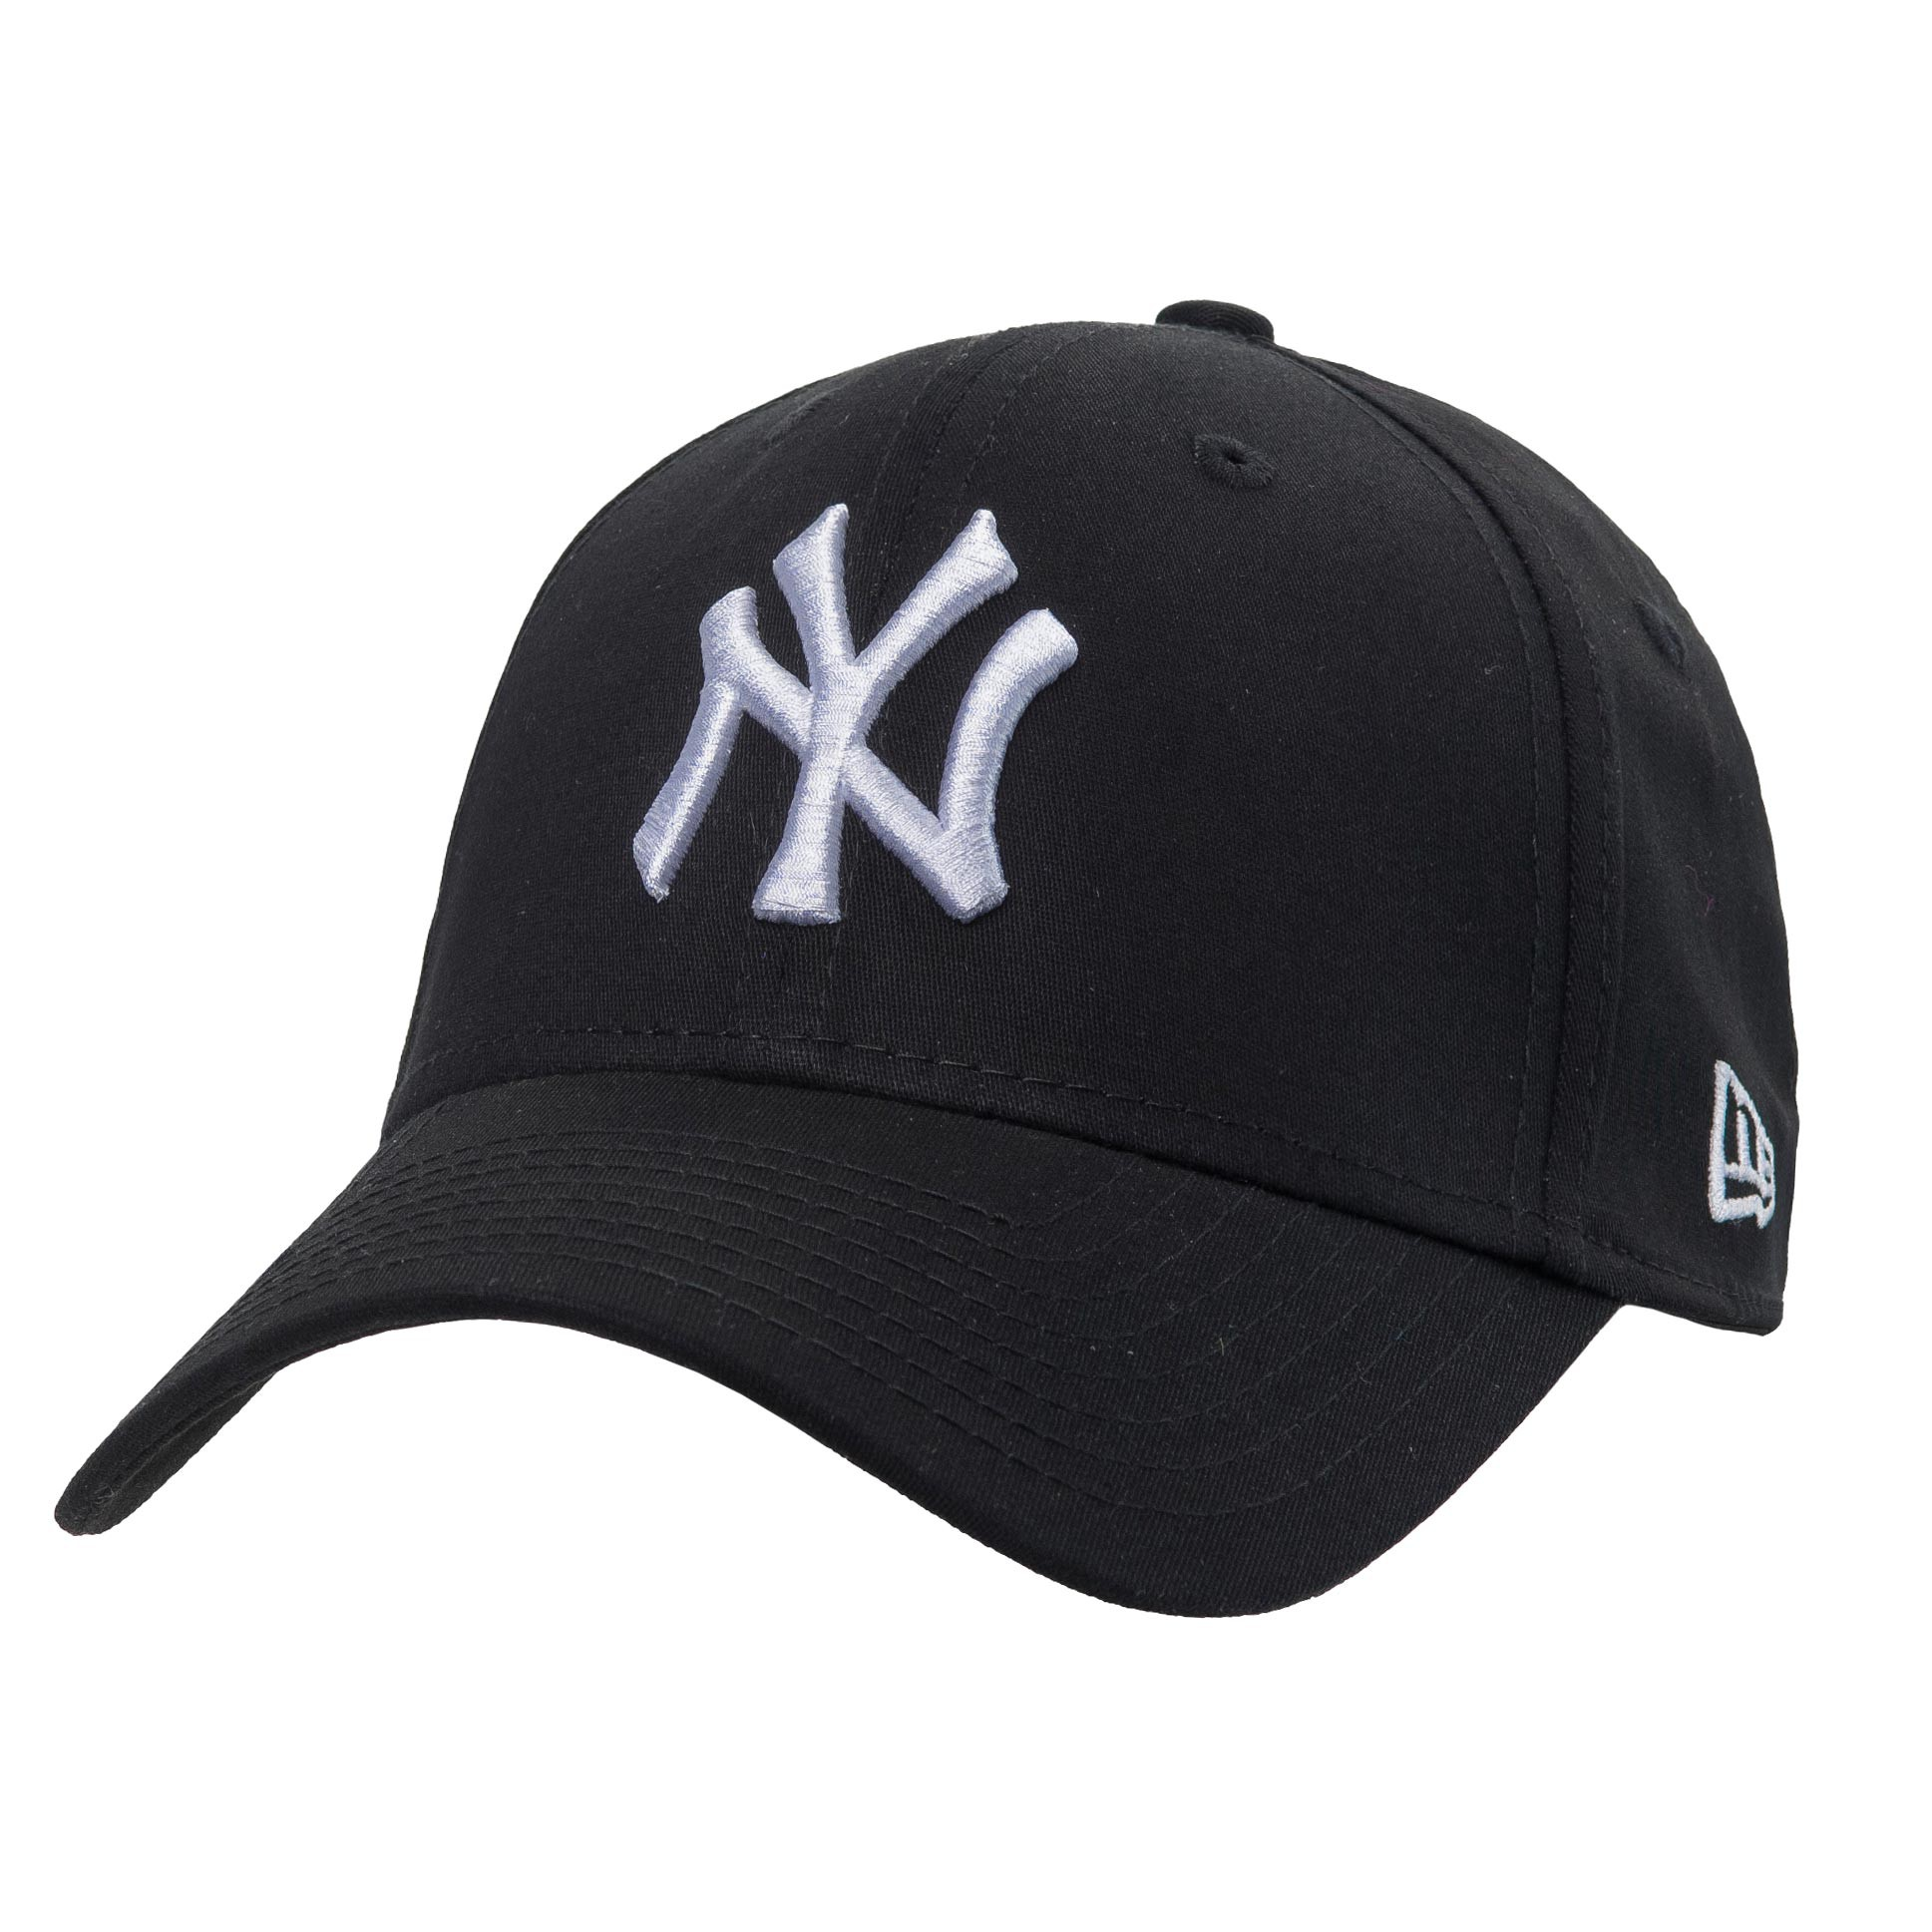 Kšiltovka New Era New York Yankees 39Thirty League black/white vel.M/L 16 + doručení do 24 hodin